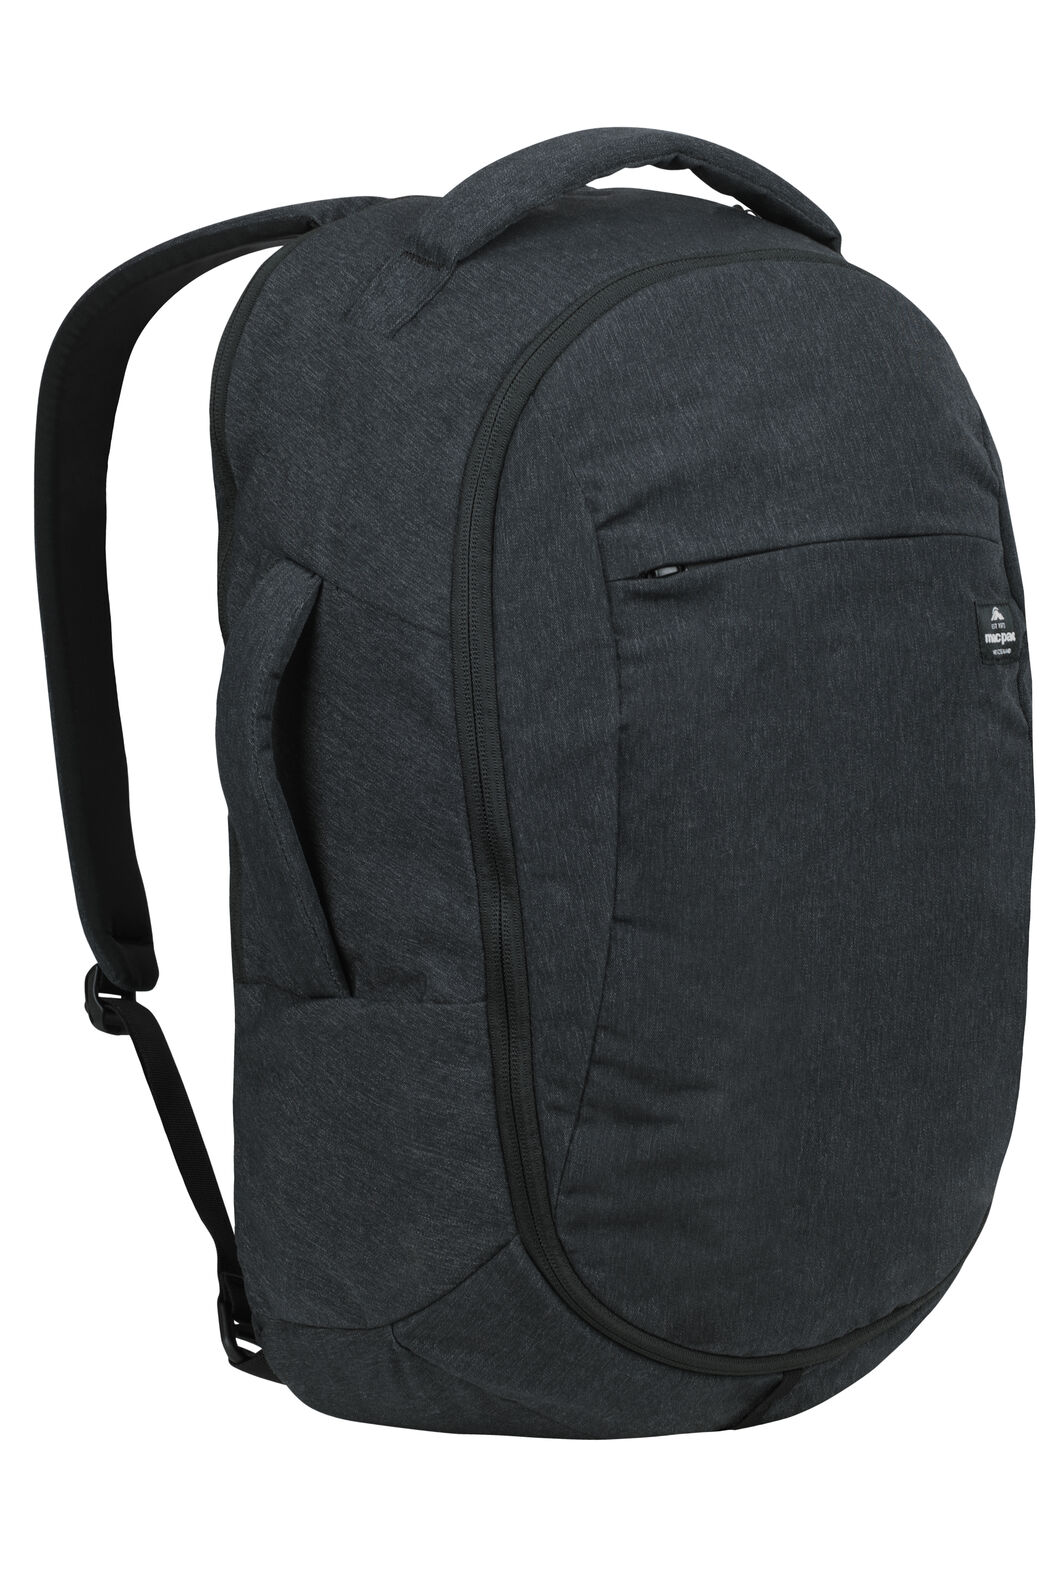 UTSIFOY 1.1 25L Backpack, Black, hi-res